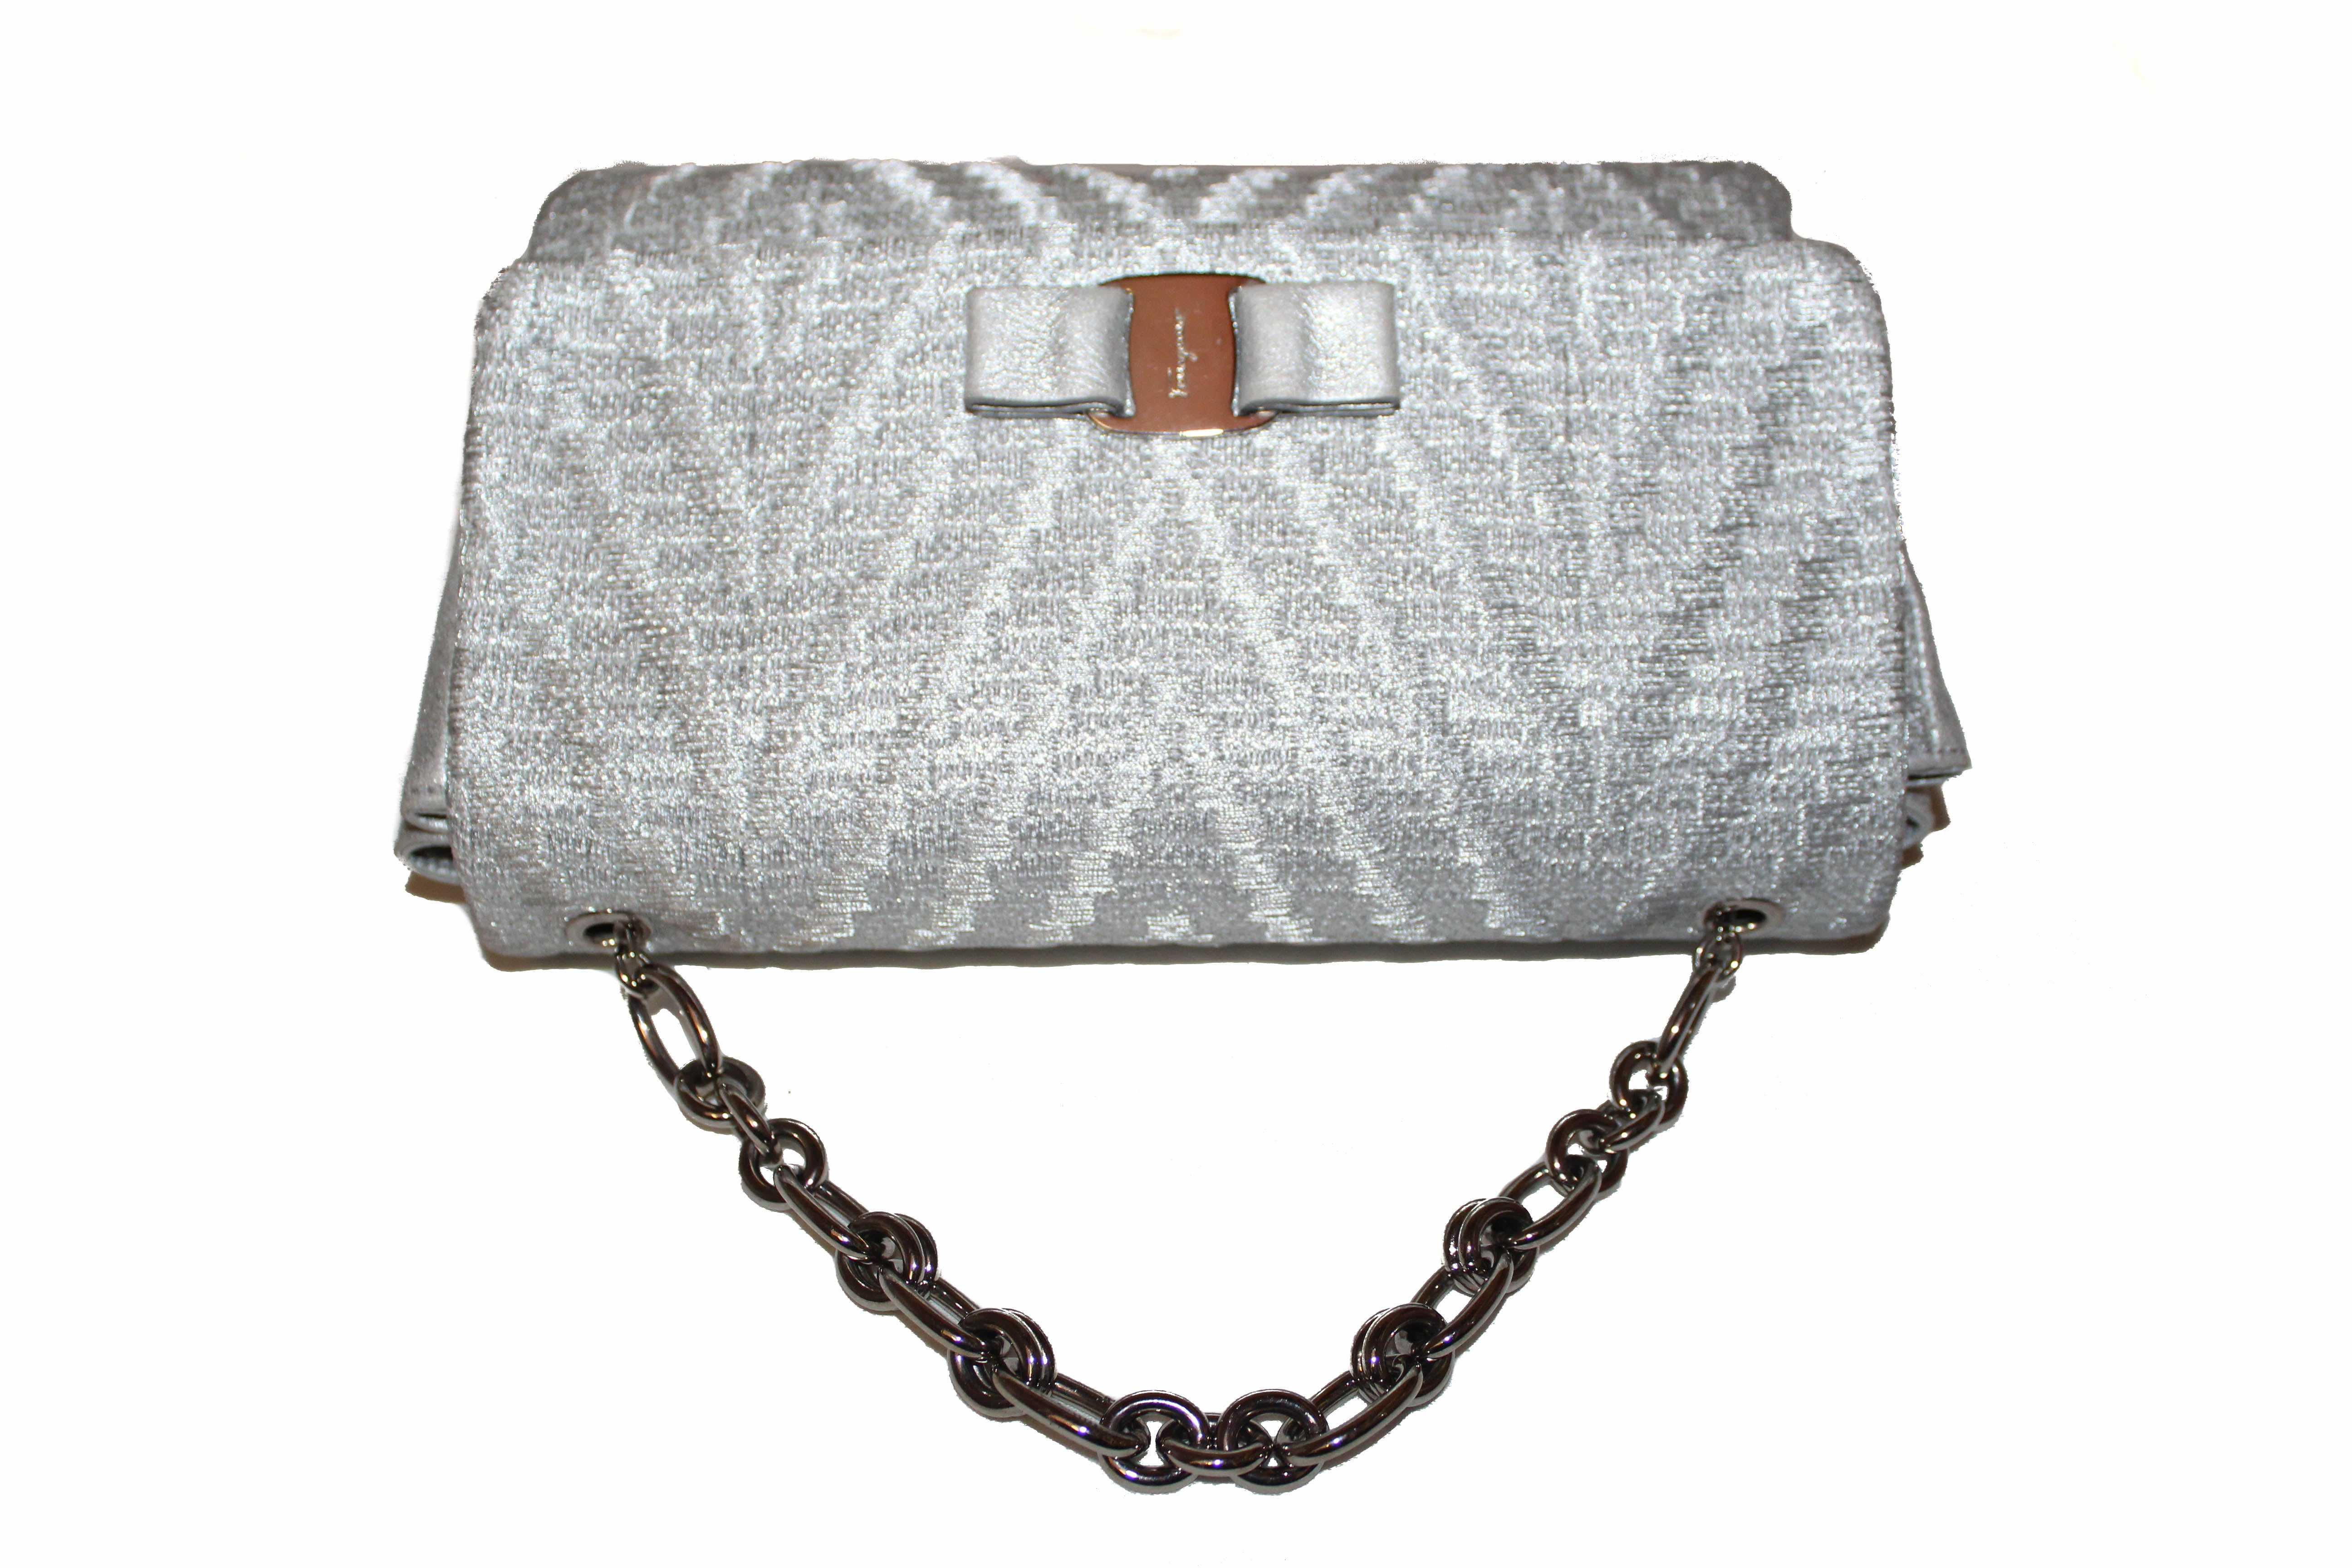 Authentic Salvatore Ferragamo Metallic Silver Tweed & Leather Clutch with Silver Chain Bag AU-21/G193